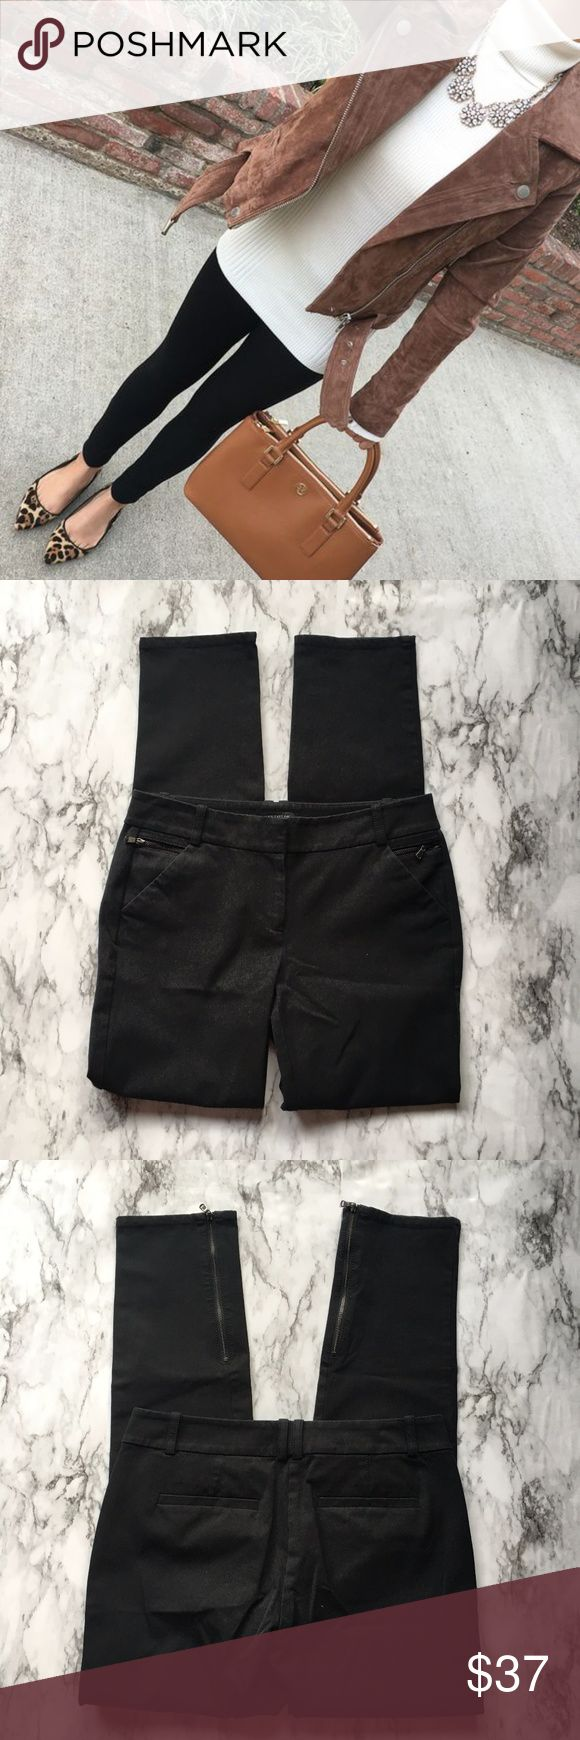 Ann Taylor Ankle Zip Ponte Pant Black professional looking ponte pants that zip at the ankle and on the top of the pant with the pockets. In excellent used condition.   Waist - 25 in. Inseam - 29 in. Outseam - 37 in. Leg opening - 23 in. Rise - 8 in. Hips - 35 in. NO TRADES  *PAT12BA Ann Taylor Pants Ankle & Cropped